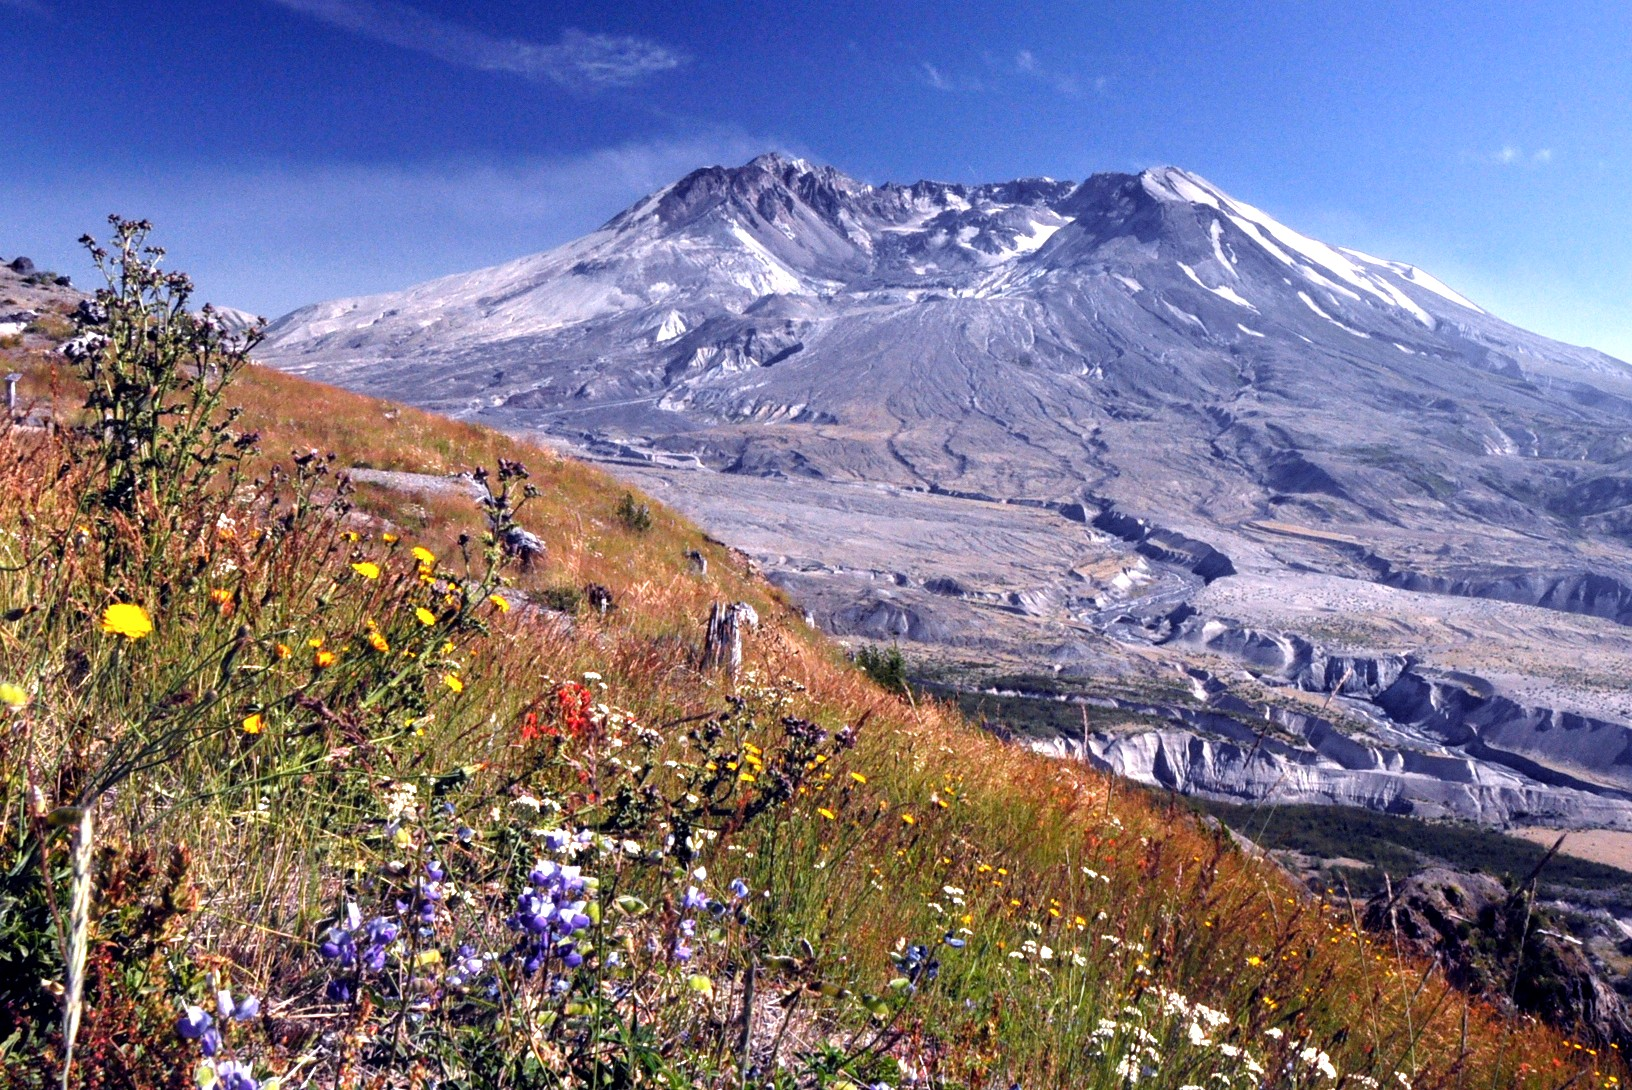 mt st helens today